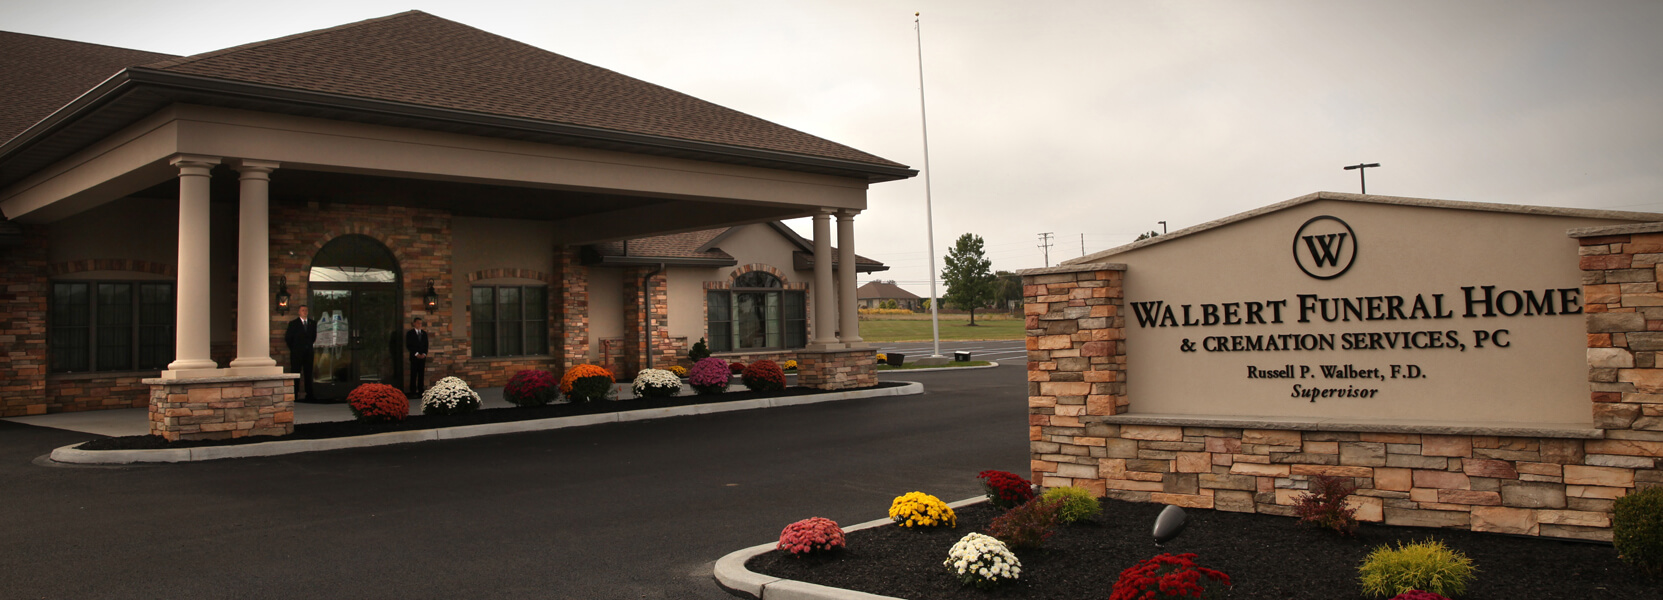 Funeral Home Fleetwood Pa